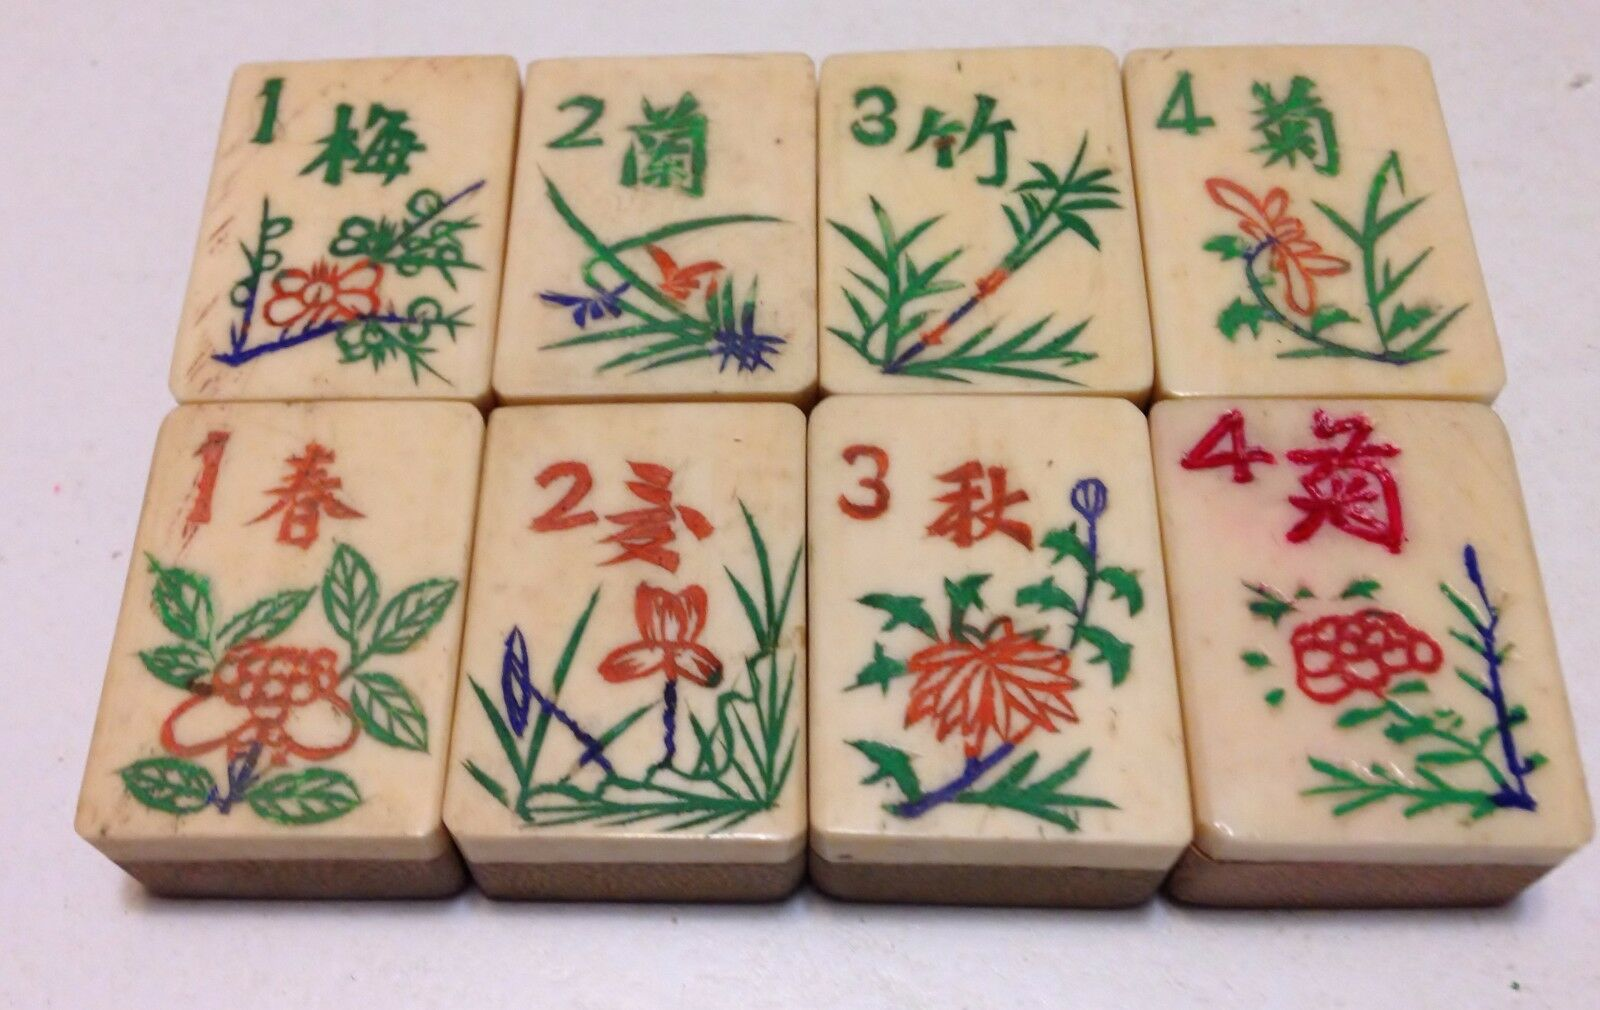 One set of 8 Tiles -Bone Bamboo - MahJong - 1920s  - 8 Tile Set4